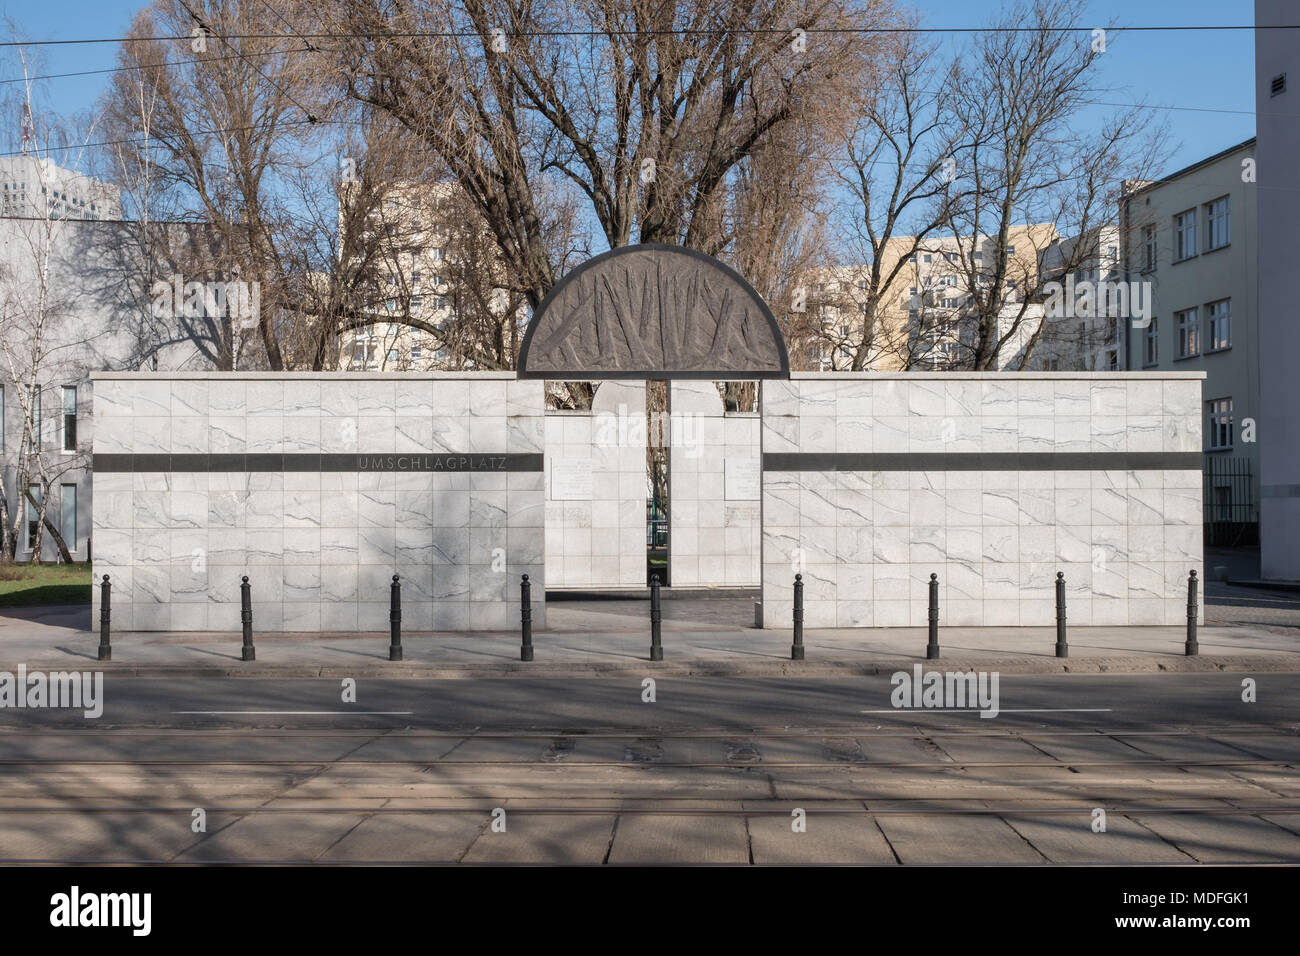 Site of the Umschlagplatz, collection point. Modern memorial to the Jews who were deported from the Warsaw Jewish Ghetto (Poland) during WW2. - Stock Image